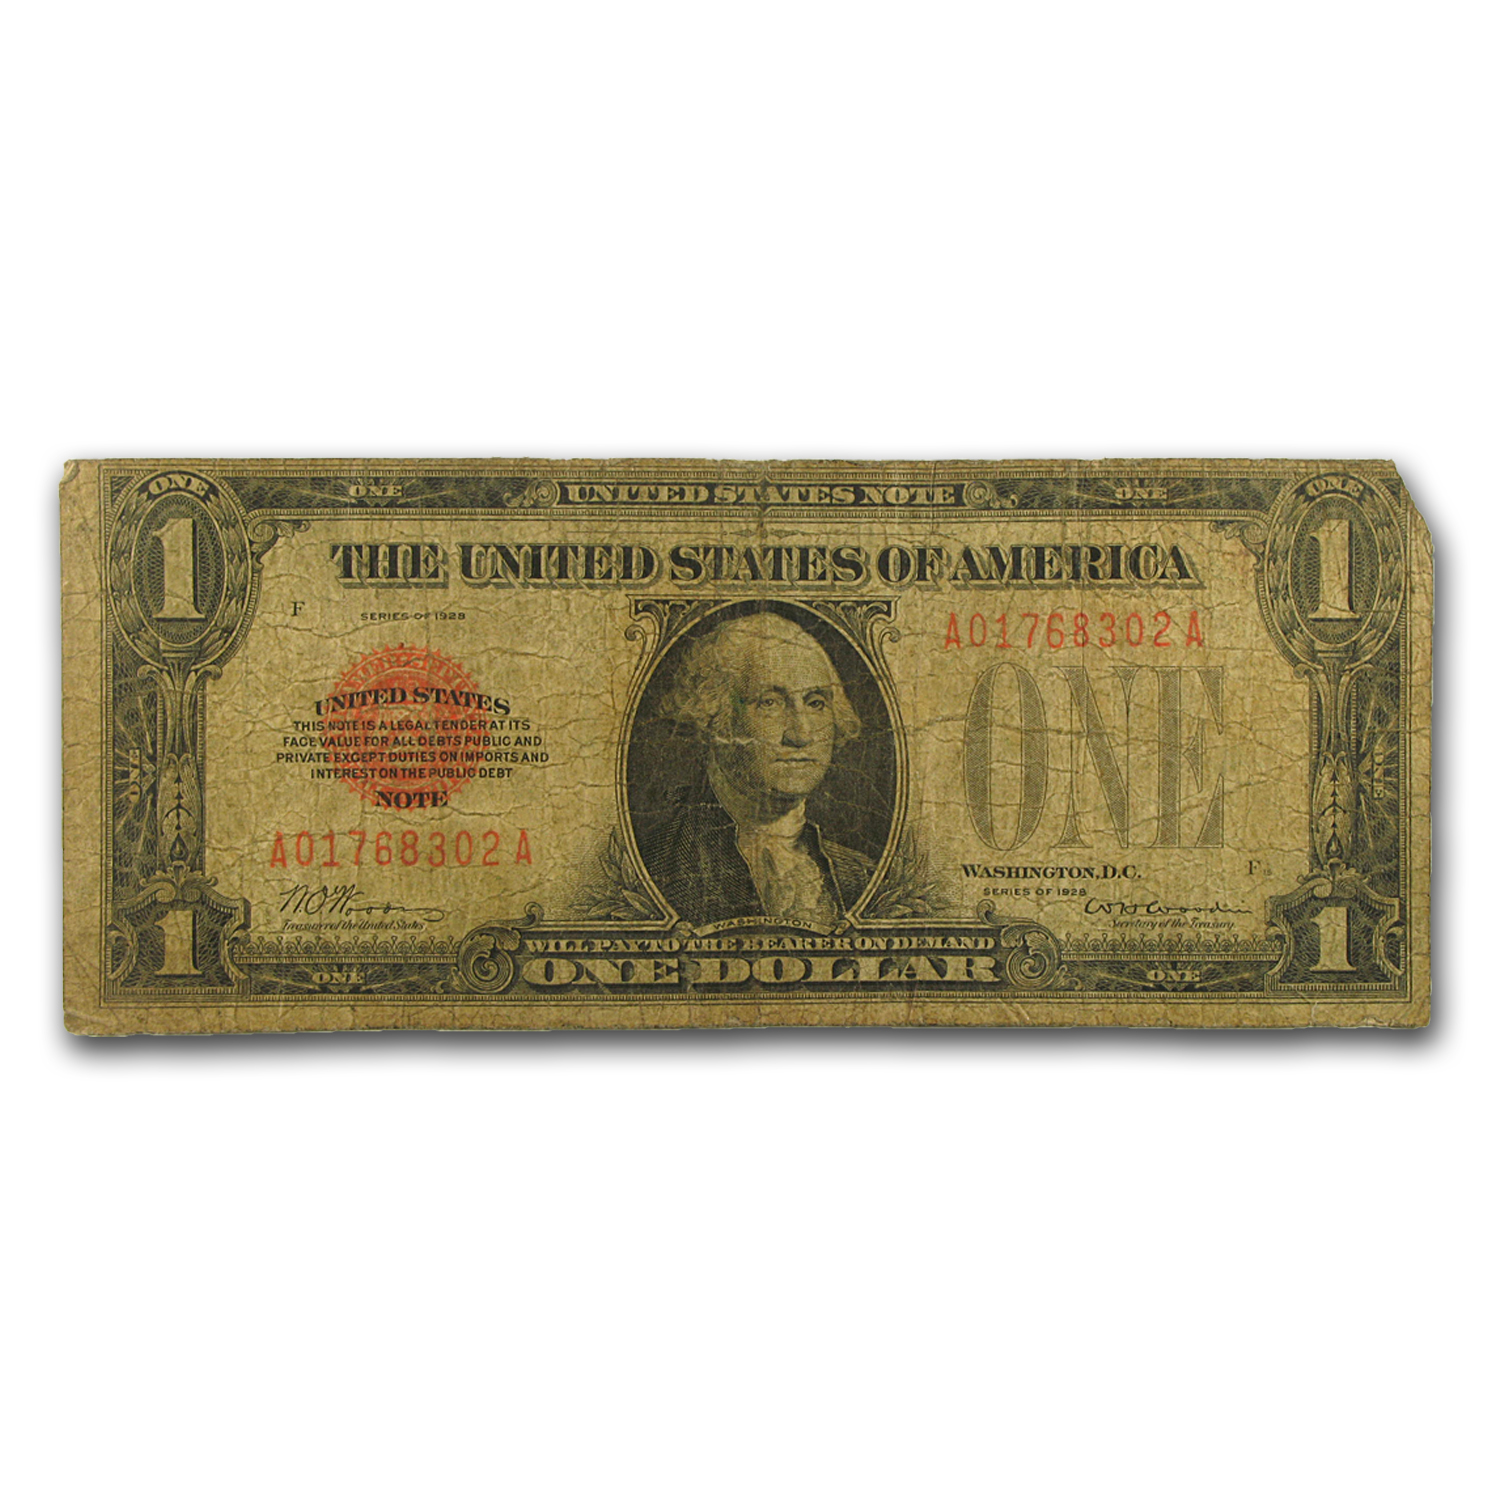 1928 $1.00 U.S. Note Legal Tender Good